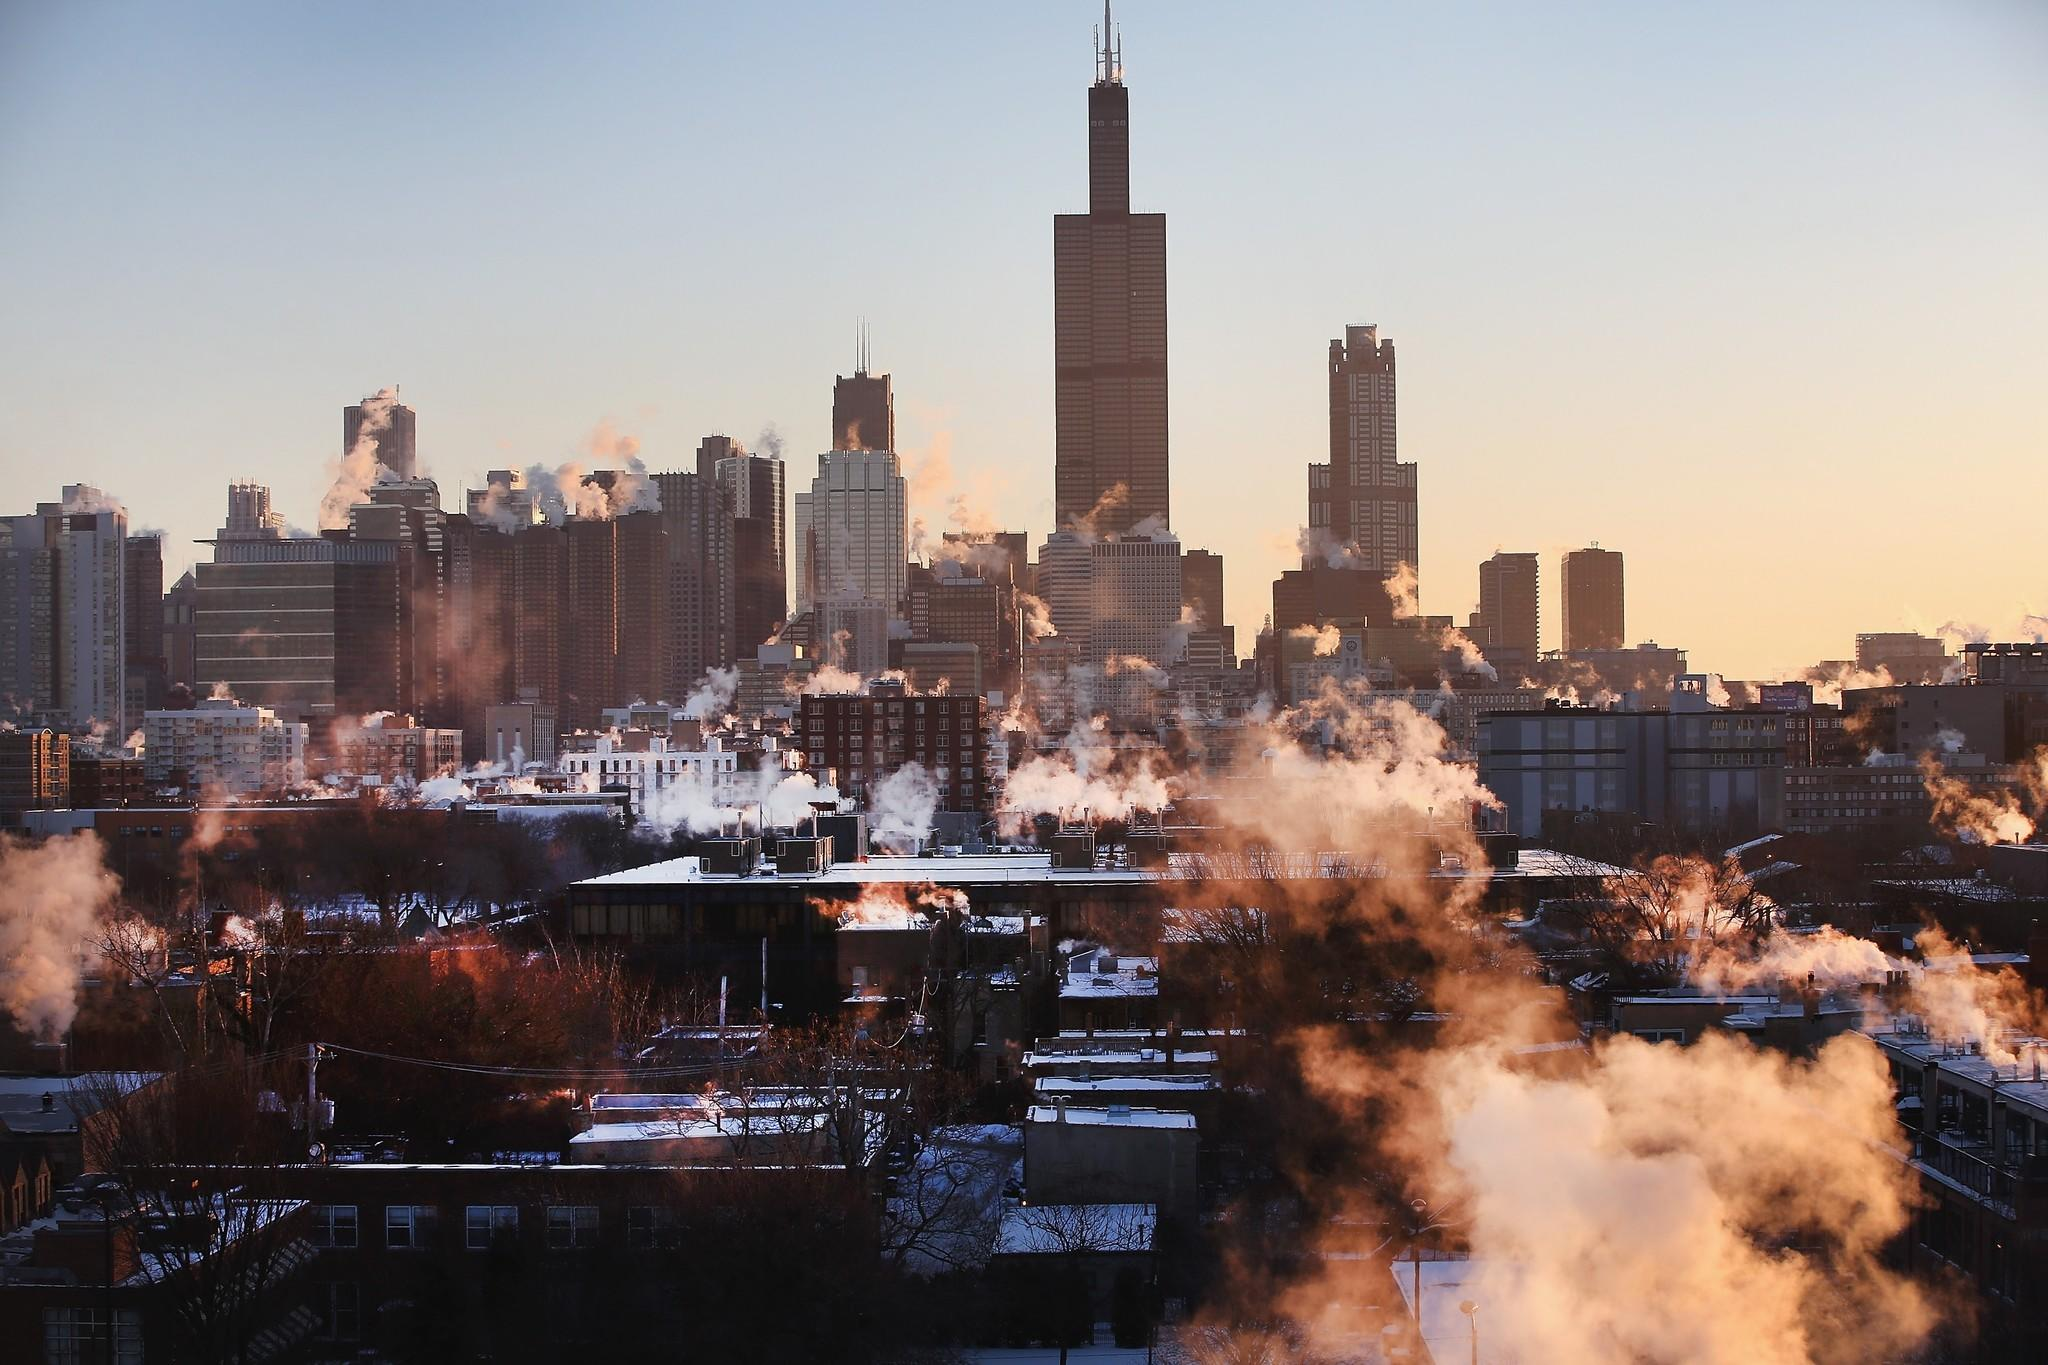 The sun rises behind the Chicago skyline.